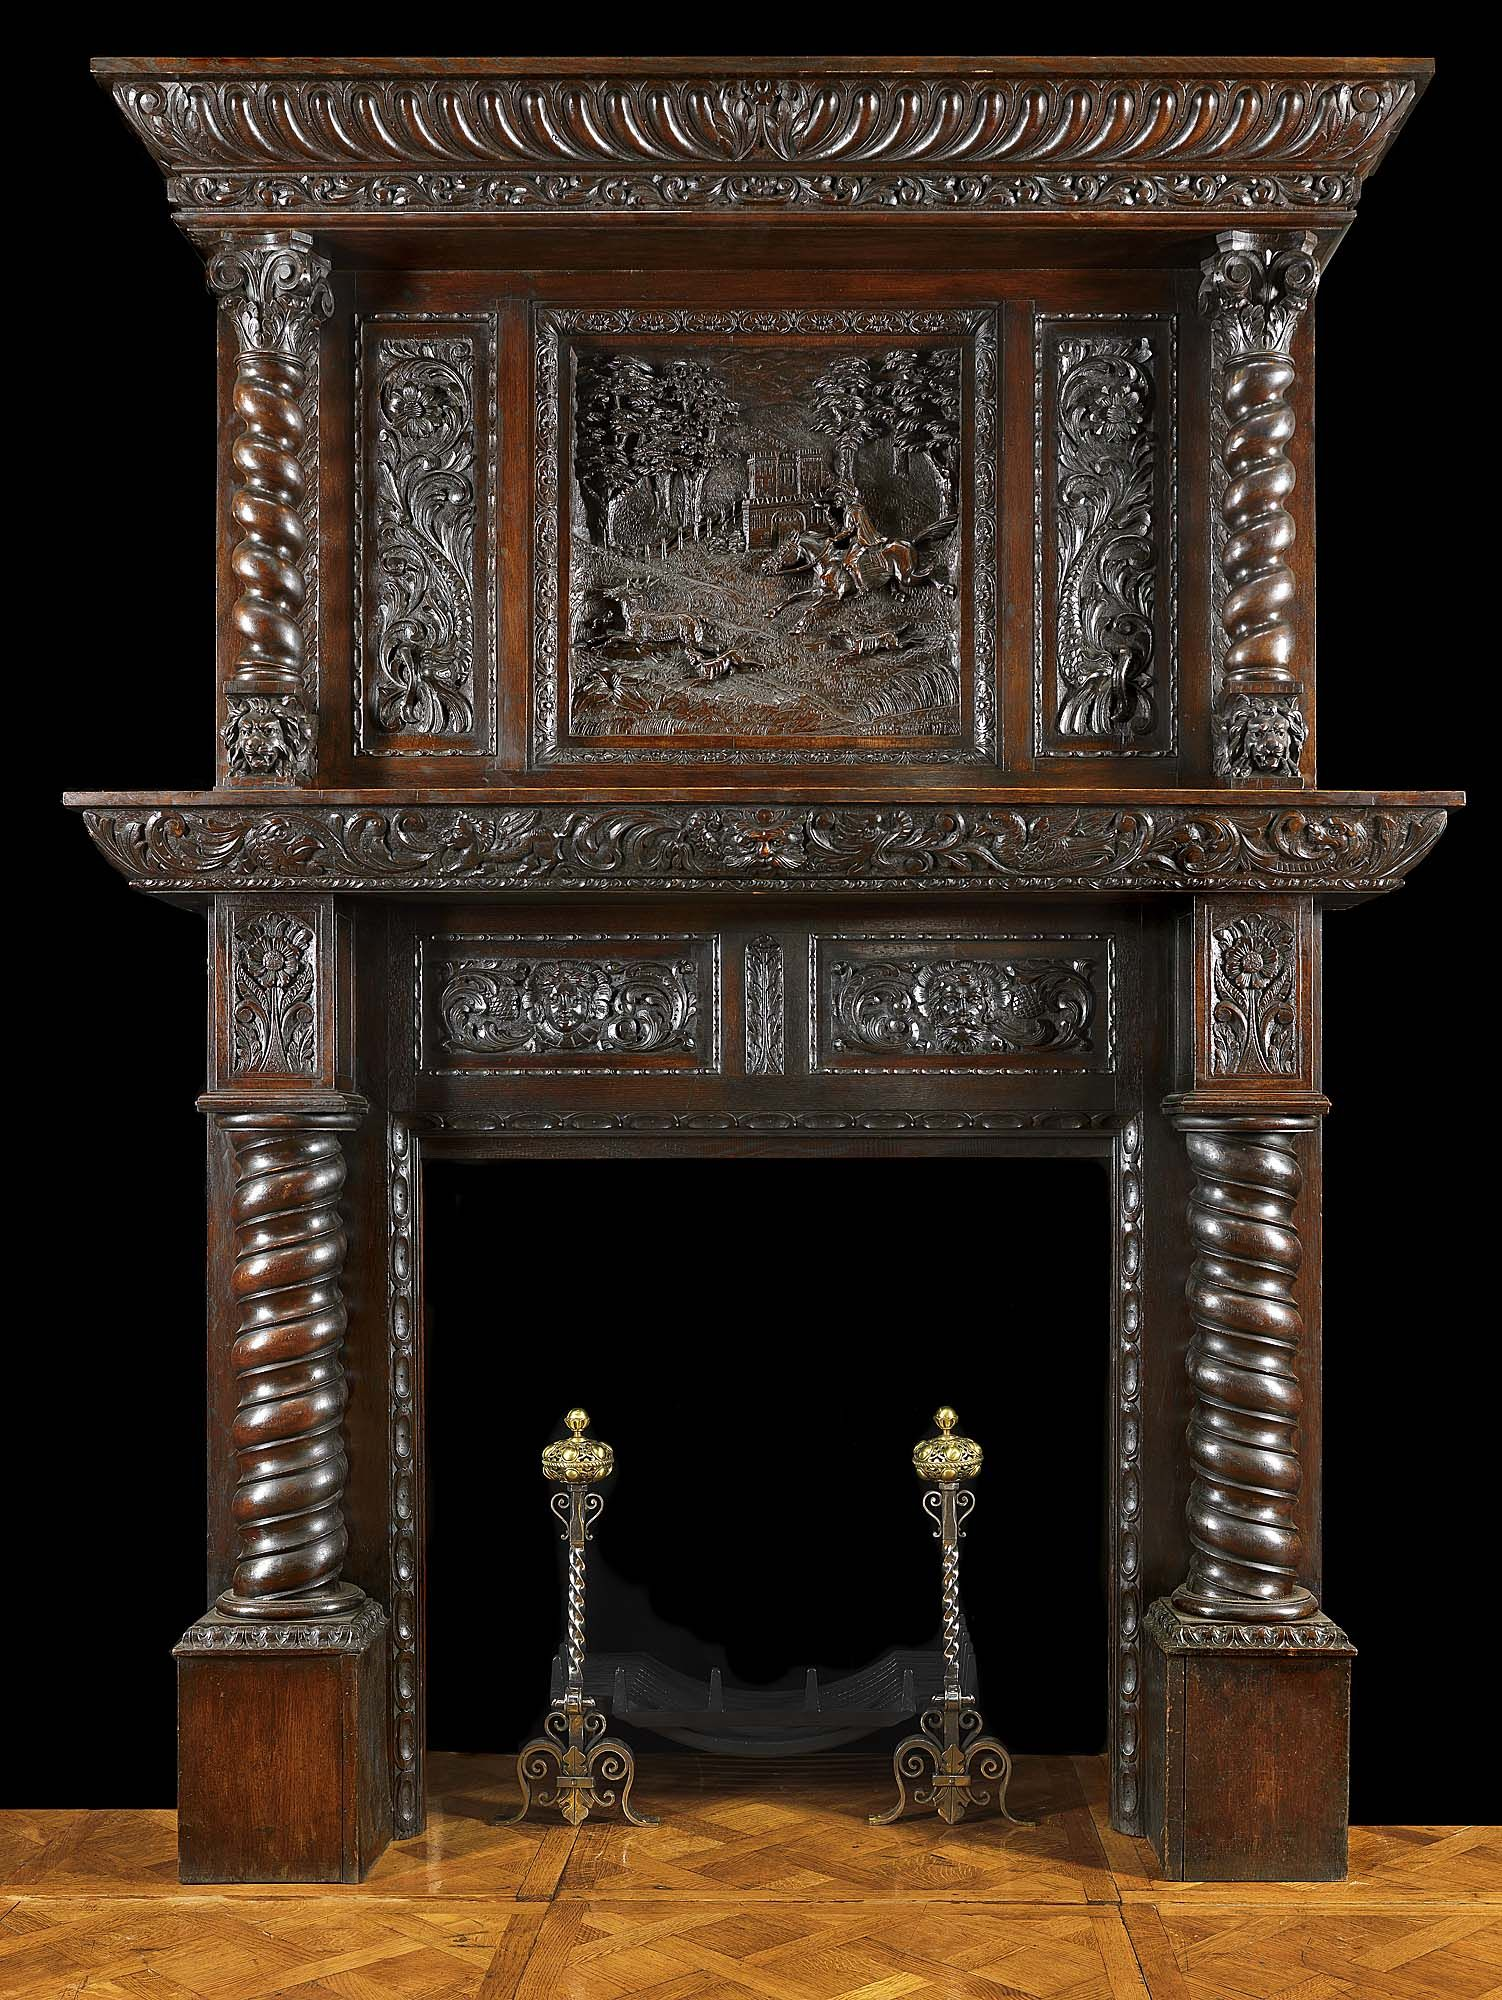 gothic antique fireplace mantels with mirrors | Antique ...